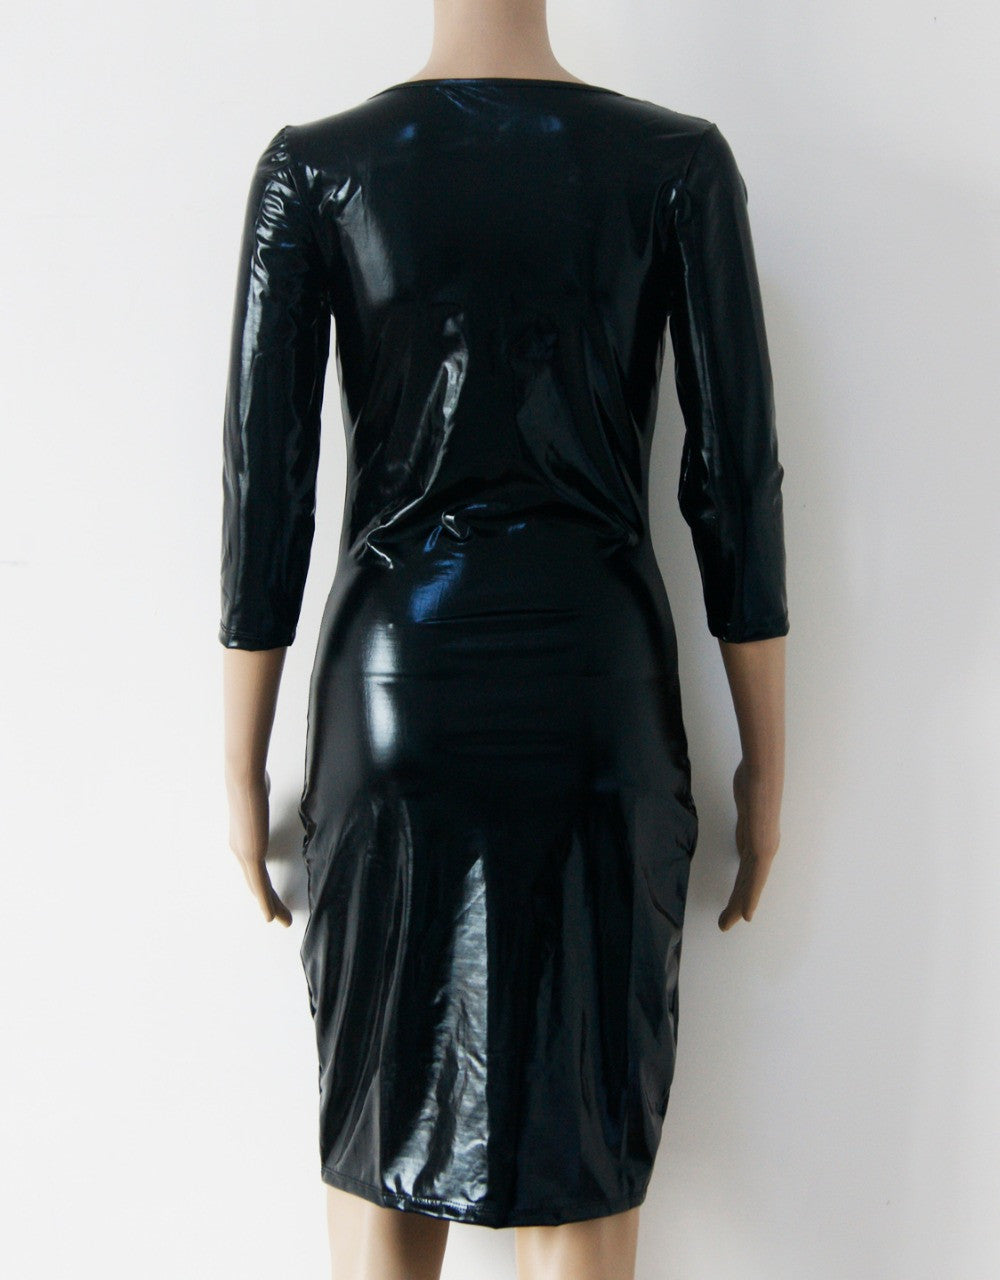 Mesh Long Sleeve Club Fascinating and Charming Black Faux Leather Dress - Sins & Temptations